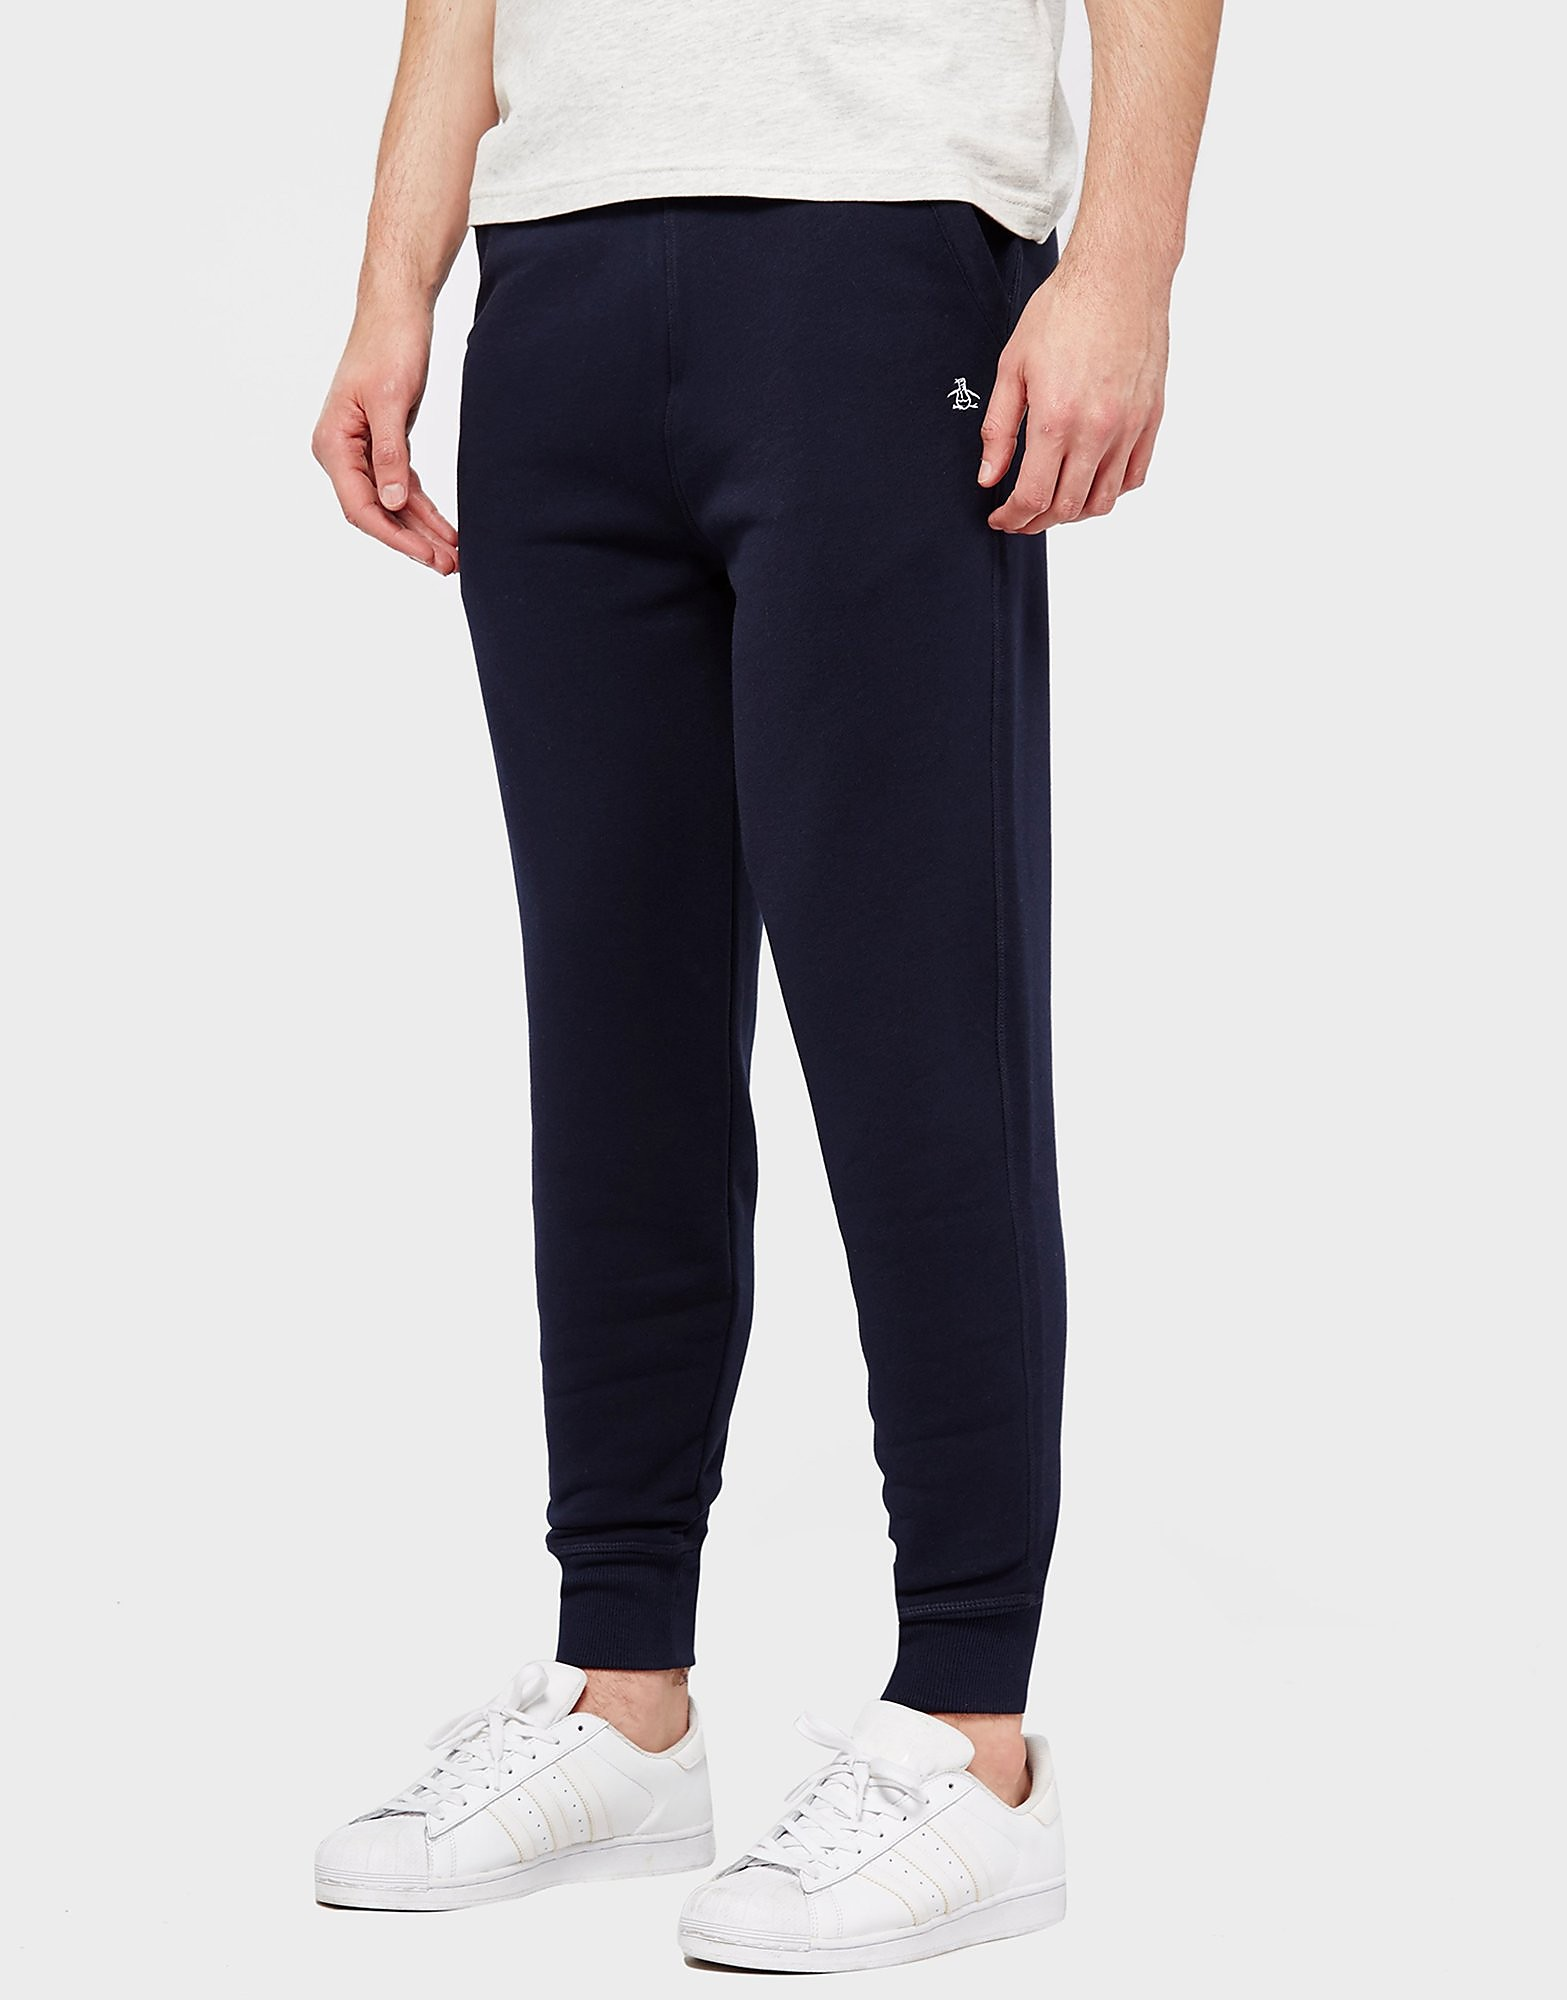 Original Penguin Cuff Pants